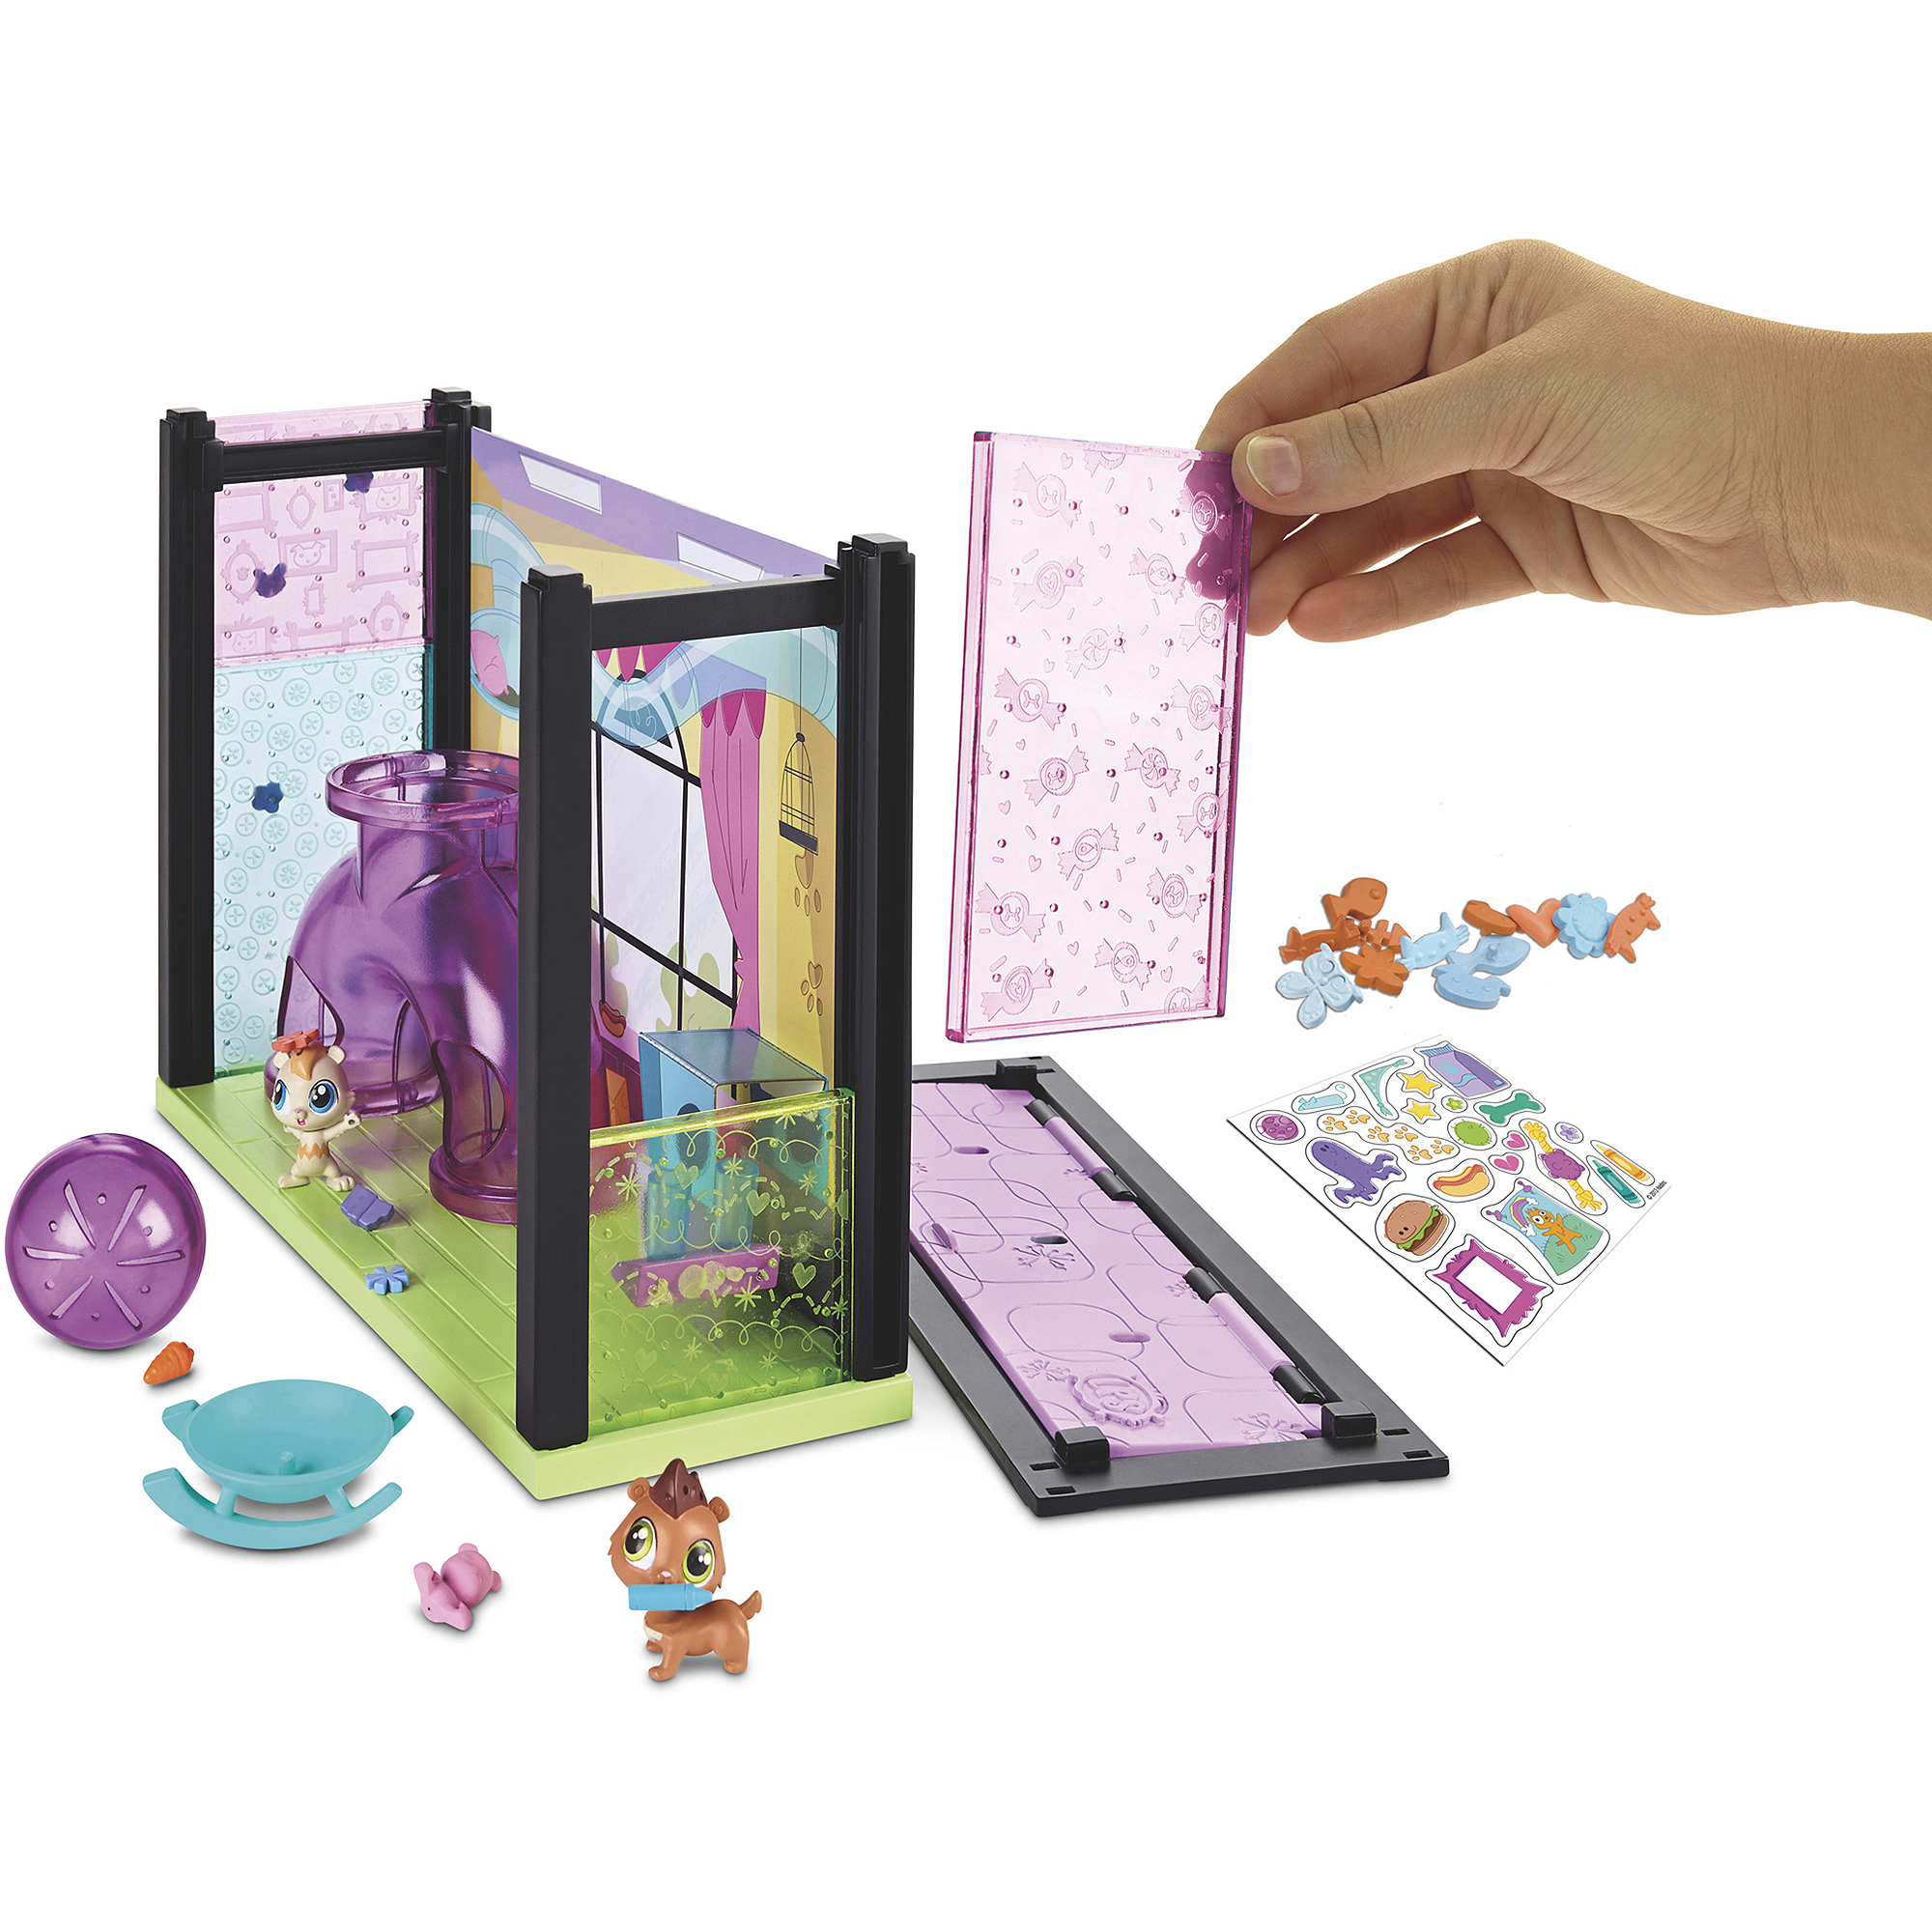 Littlest Pet Shop Pet Acular Fun Room Style Set   Walmart.com